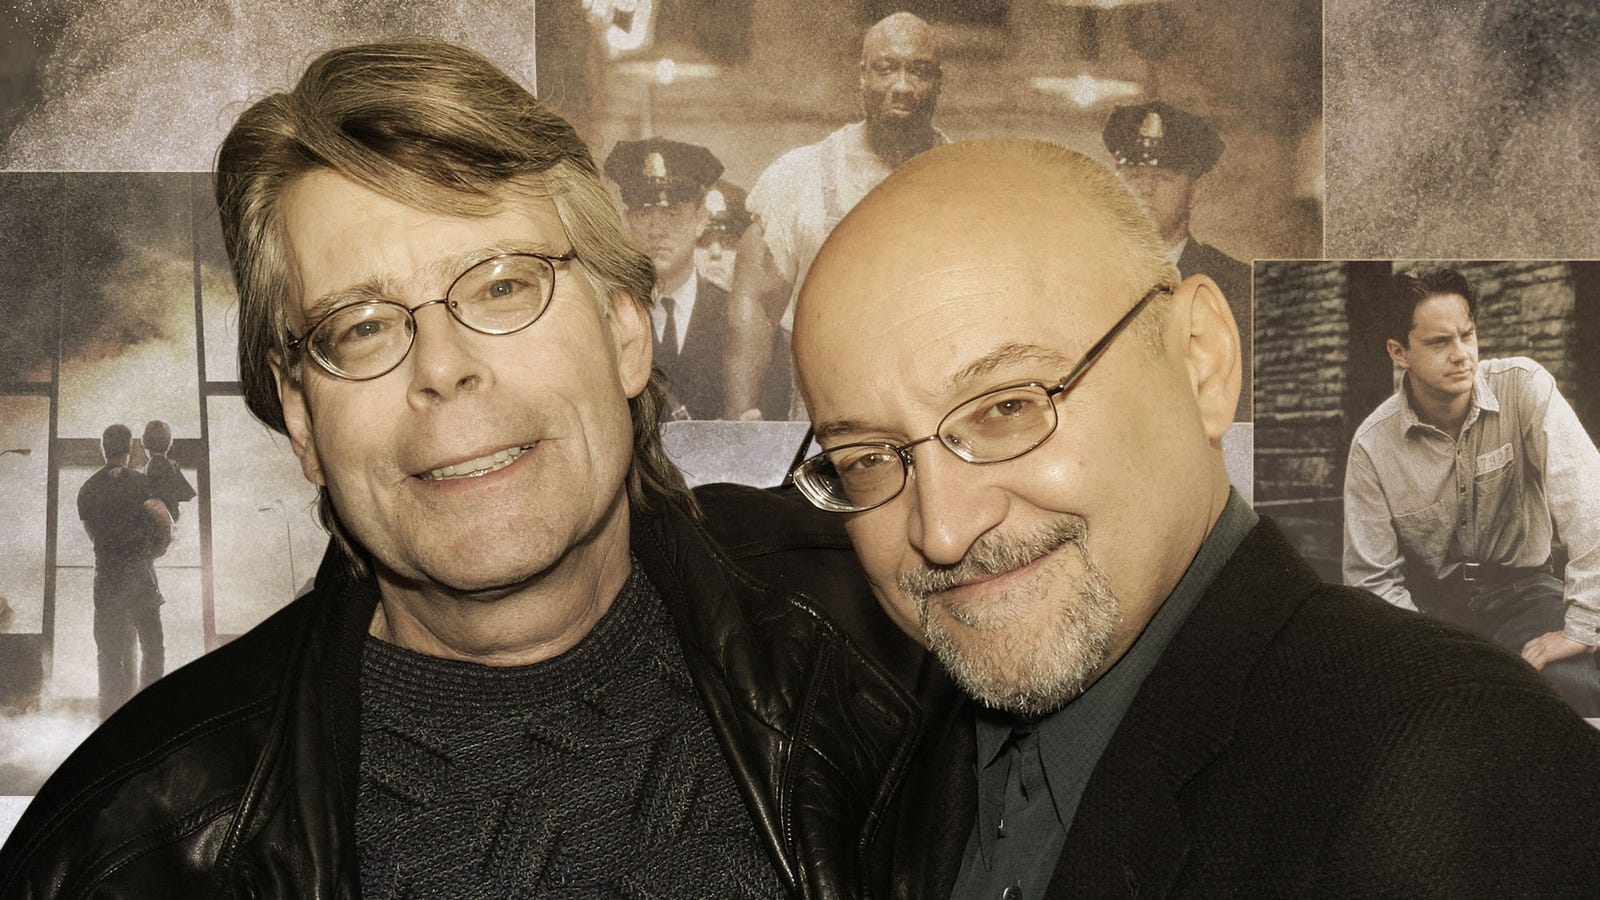 The Stephen King cinematic renaissance could really use Frank Darabont